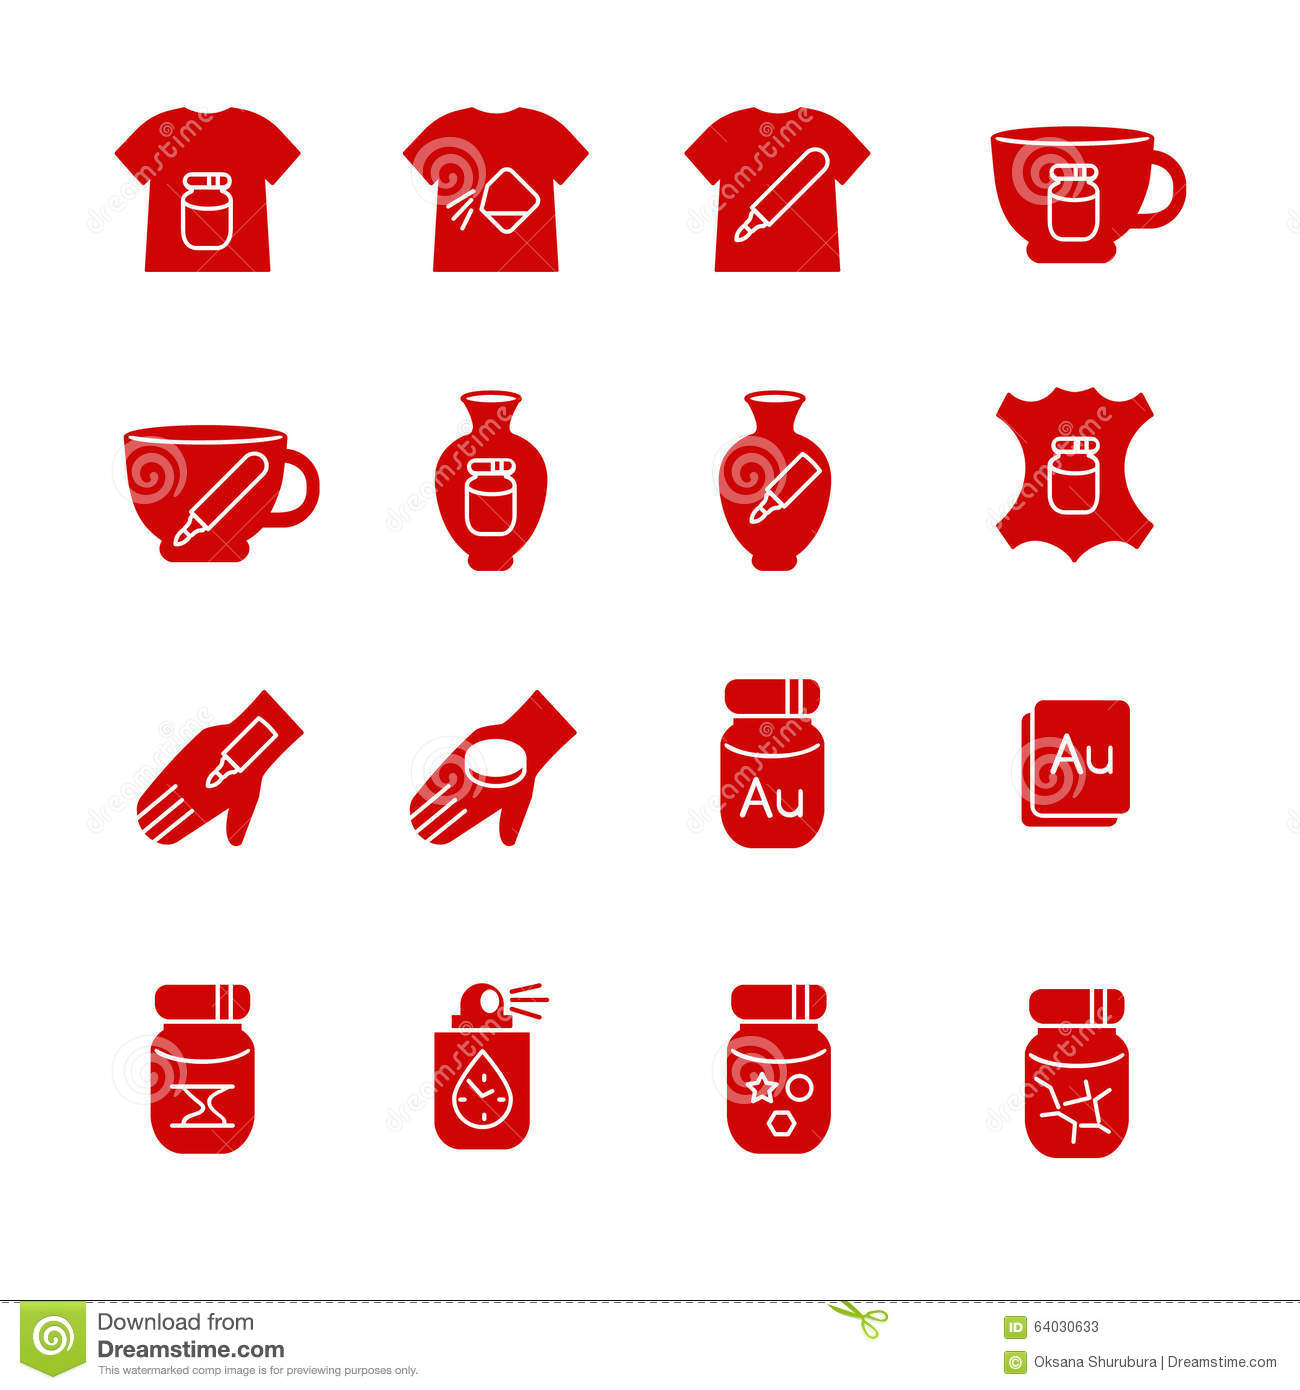 Types Of Paint And Additions For Art As Glyph Icons Stock Vector Illustration Of Bottle Protective 64030633